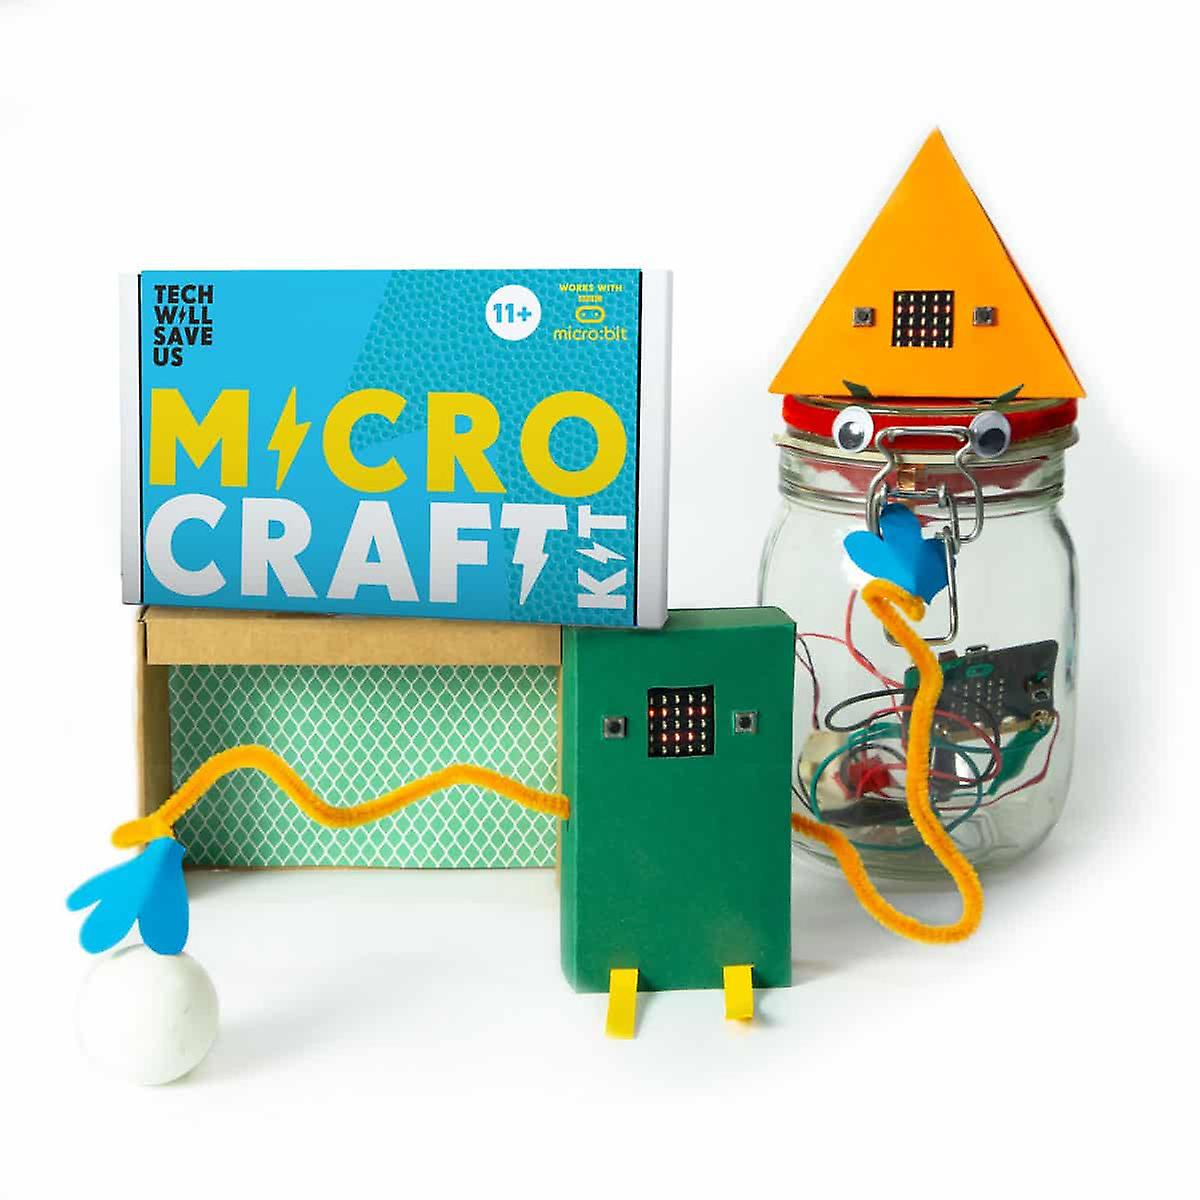 Tech Will Save Us Micro:craft Education 6 Pack | For Teachers, Workshops and Schools